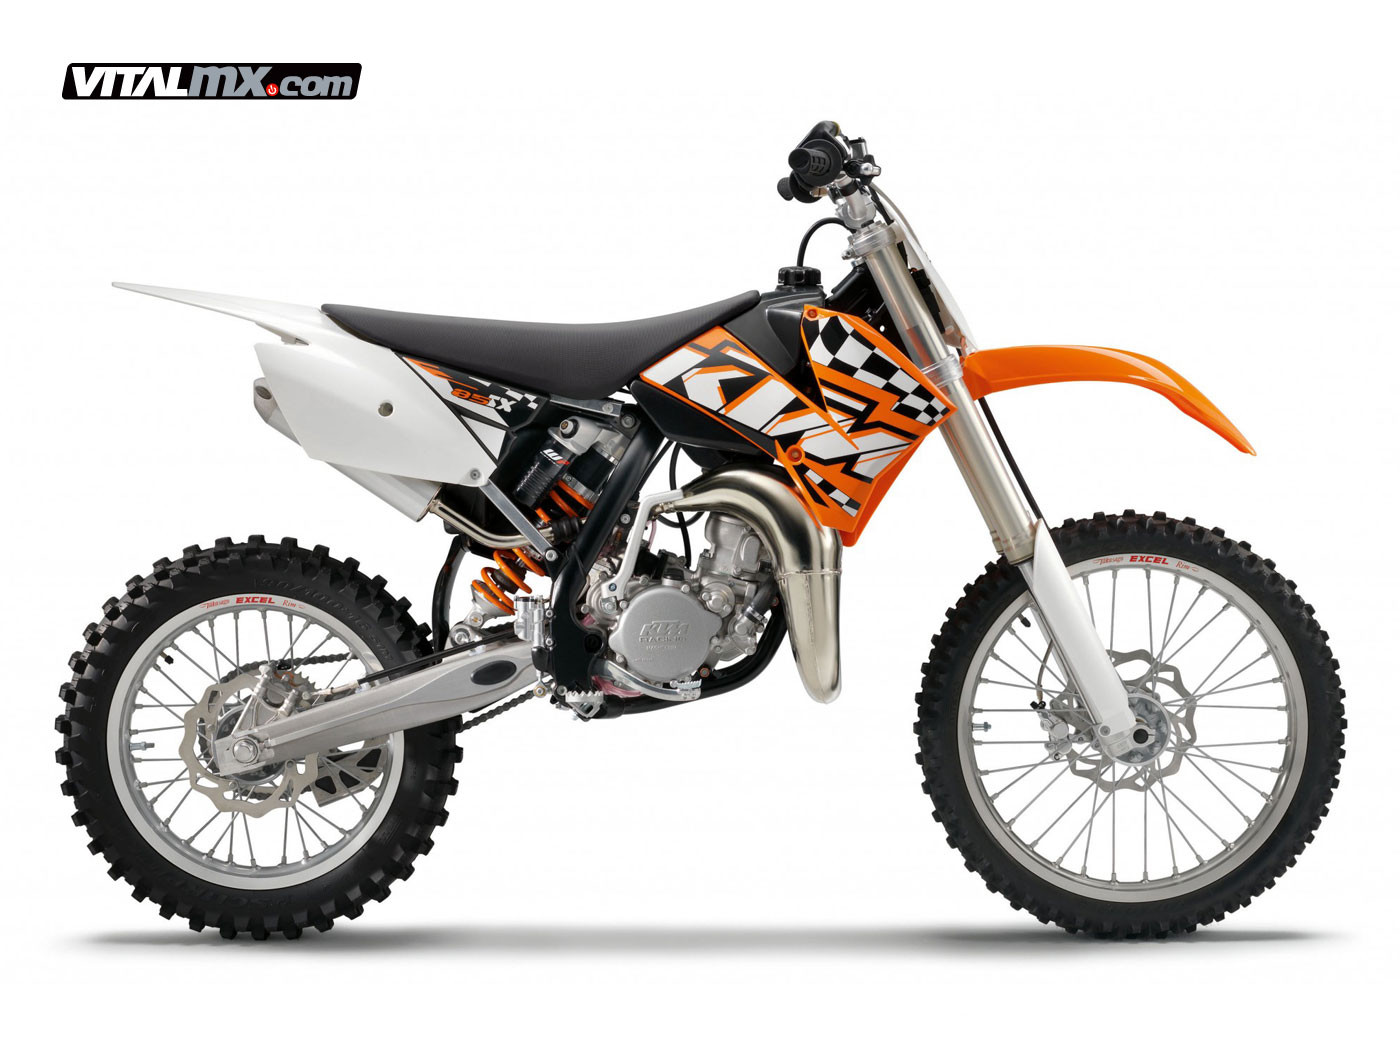 2011 ktm 85 2011 ktm wallpapers motocross pictures vital mx. Black Bedroom Furniture Sets. Home Design Ideas